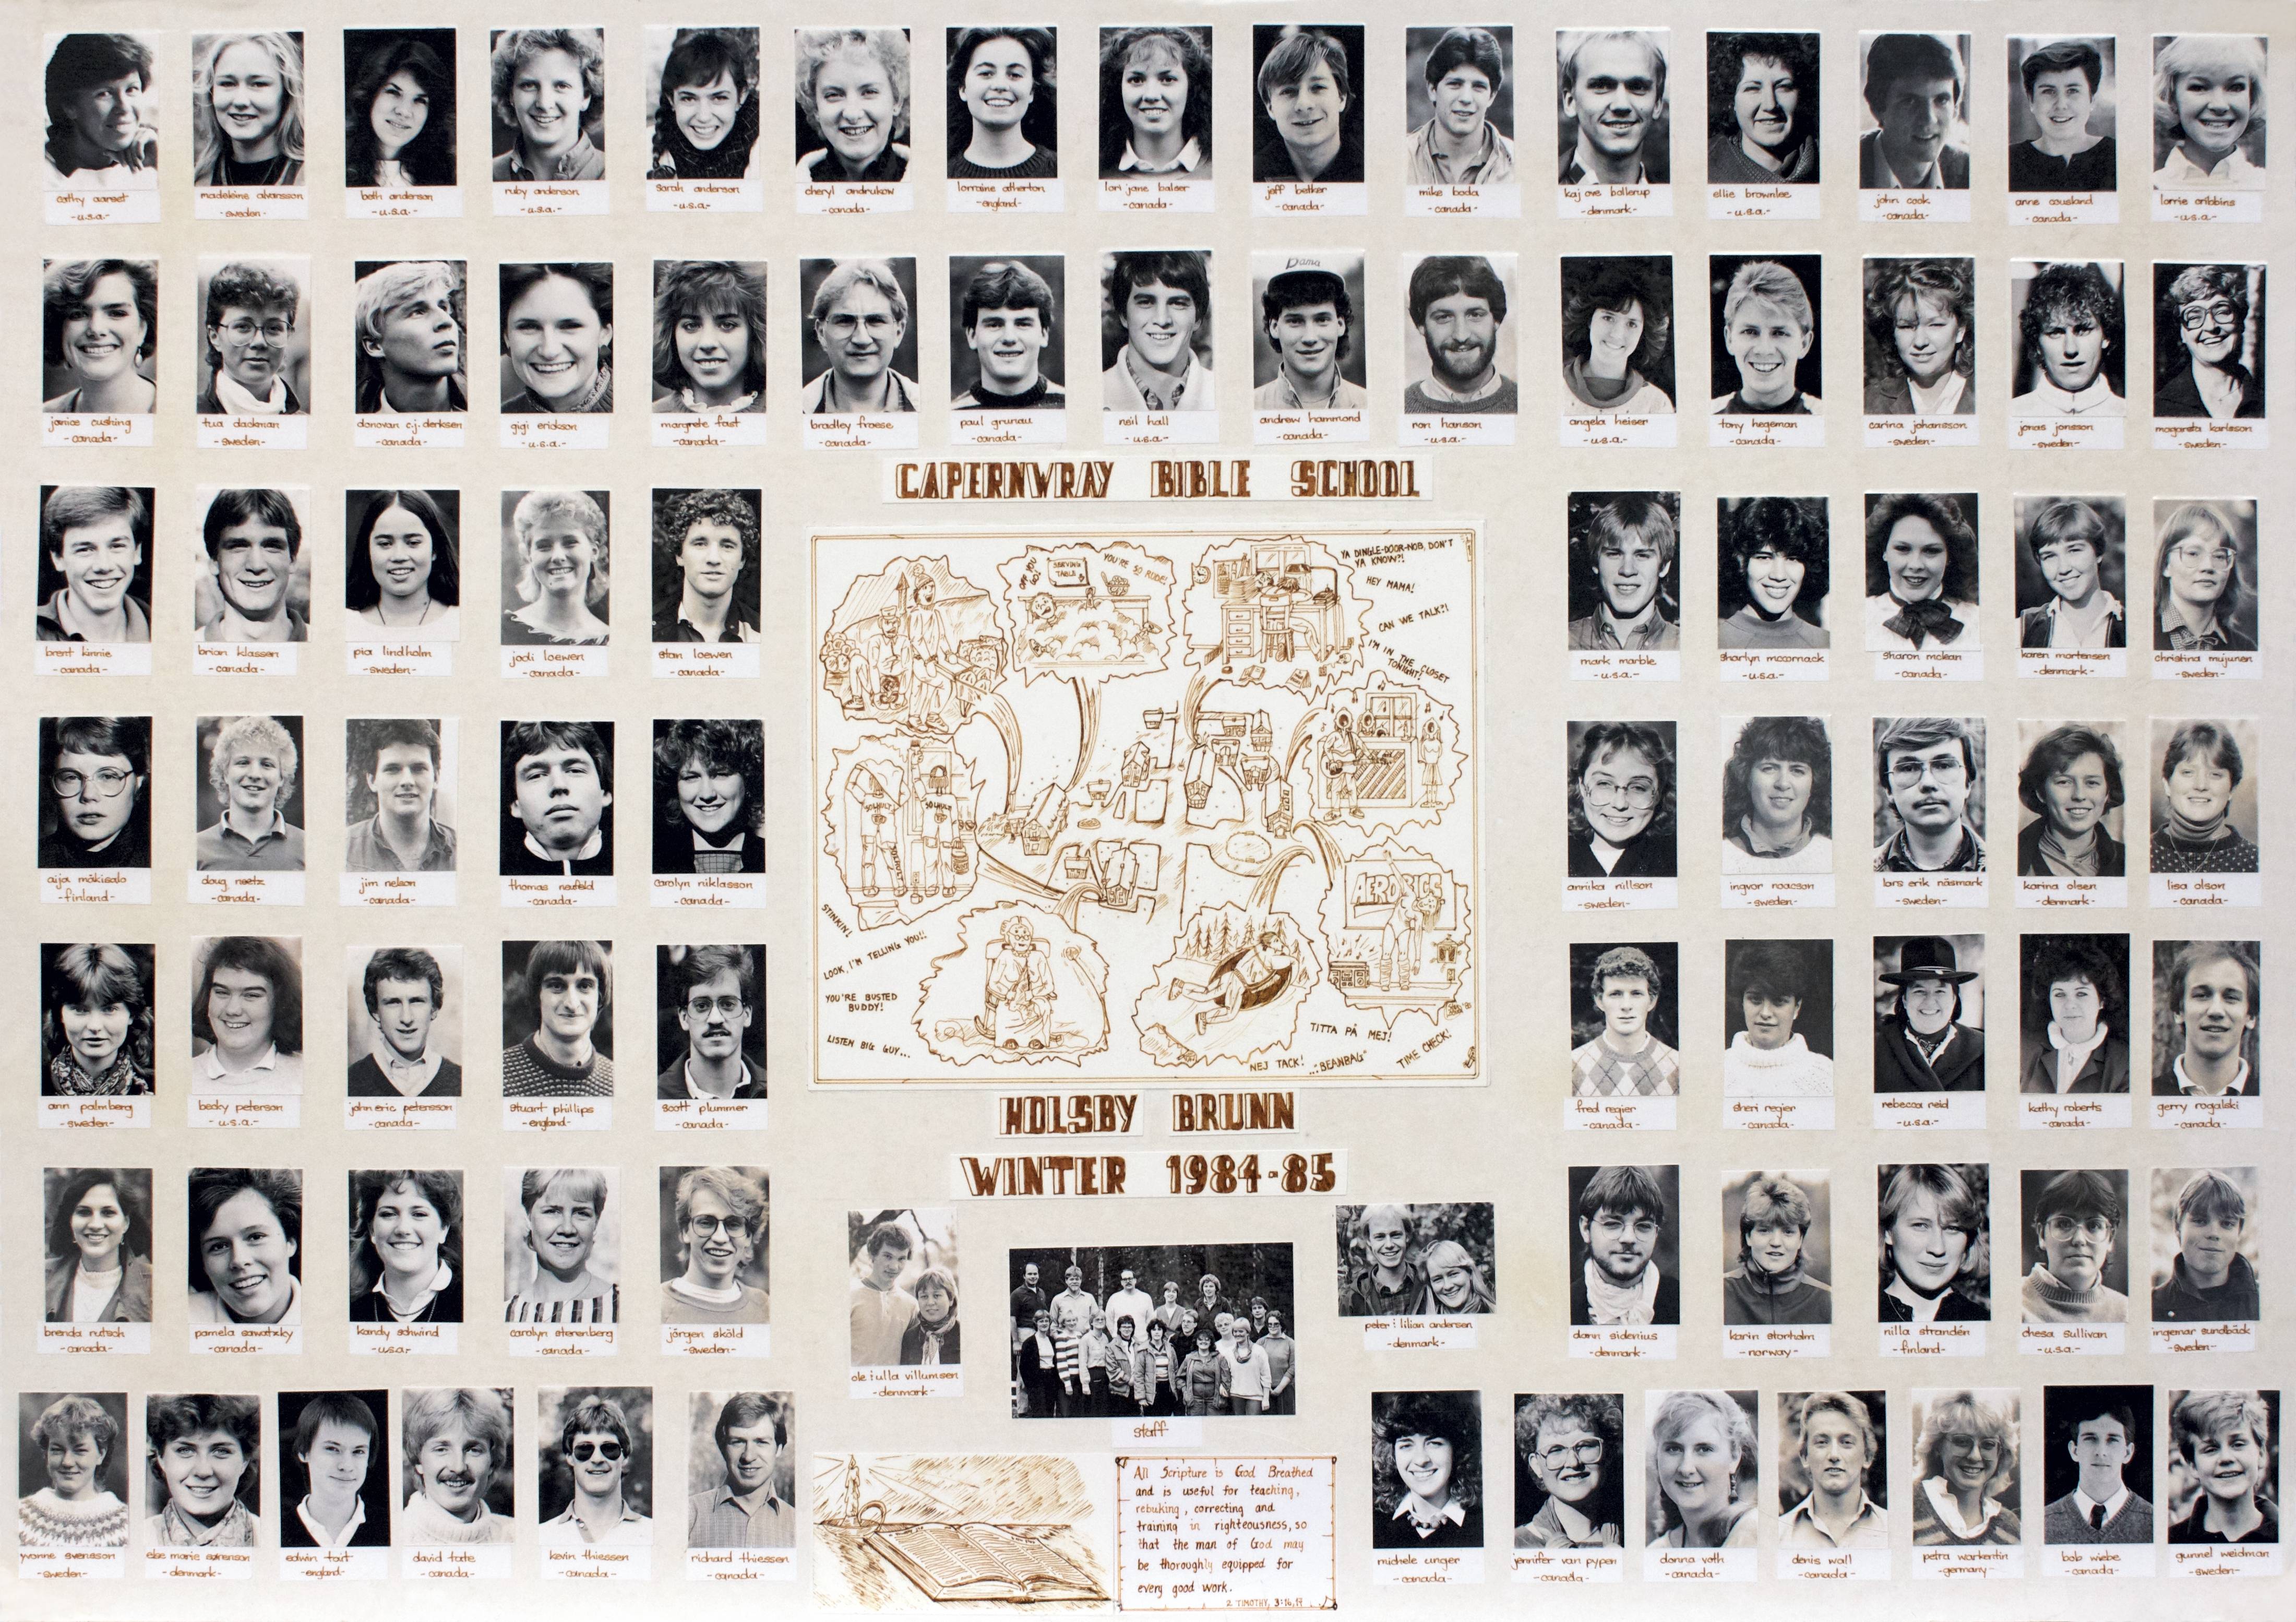 Class of 1984-85 (click to enlarge)